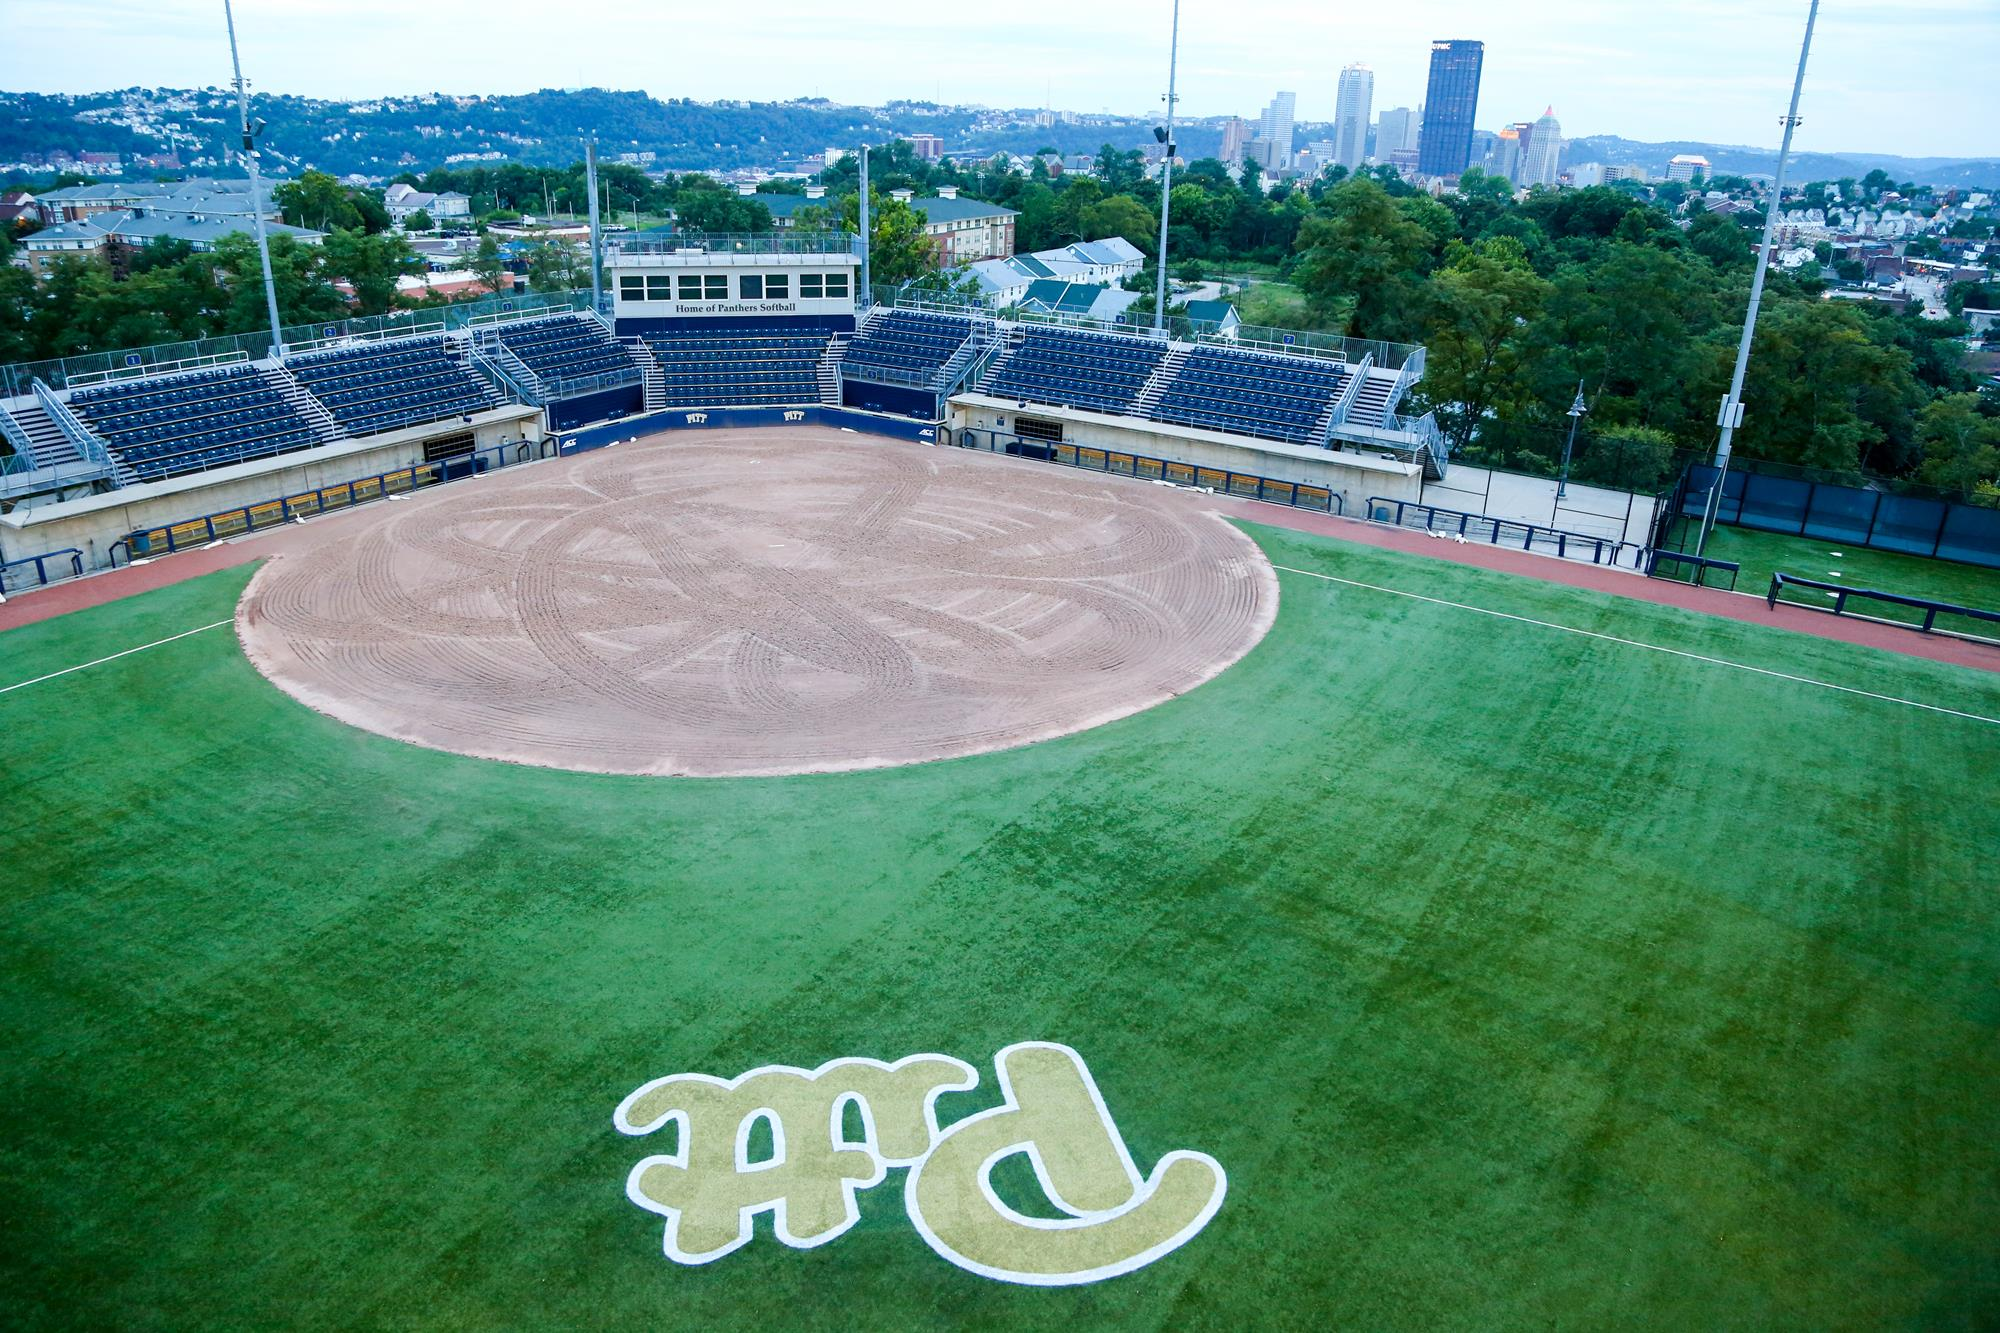 Petersen sports complex facilities university of pittsburgh view full image malvernweather Images